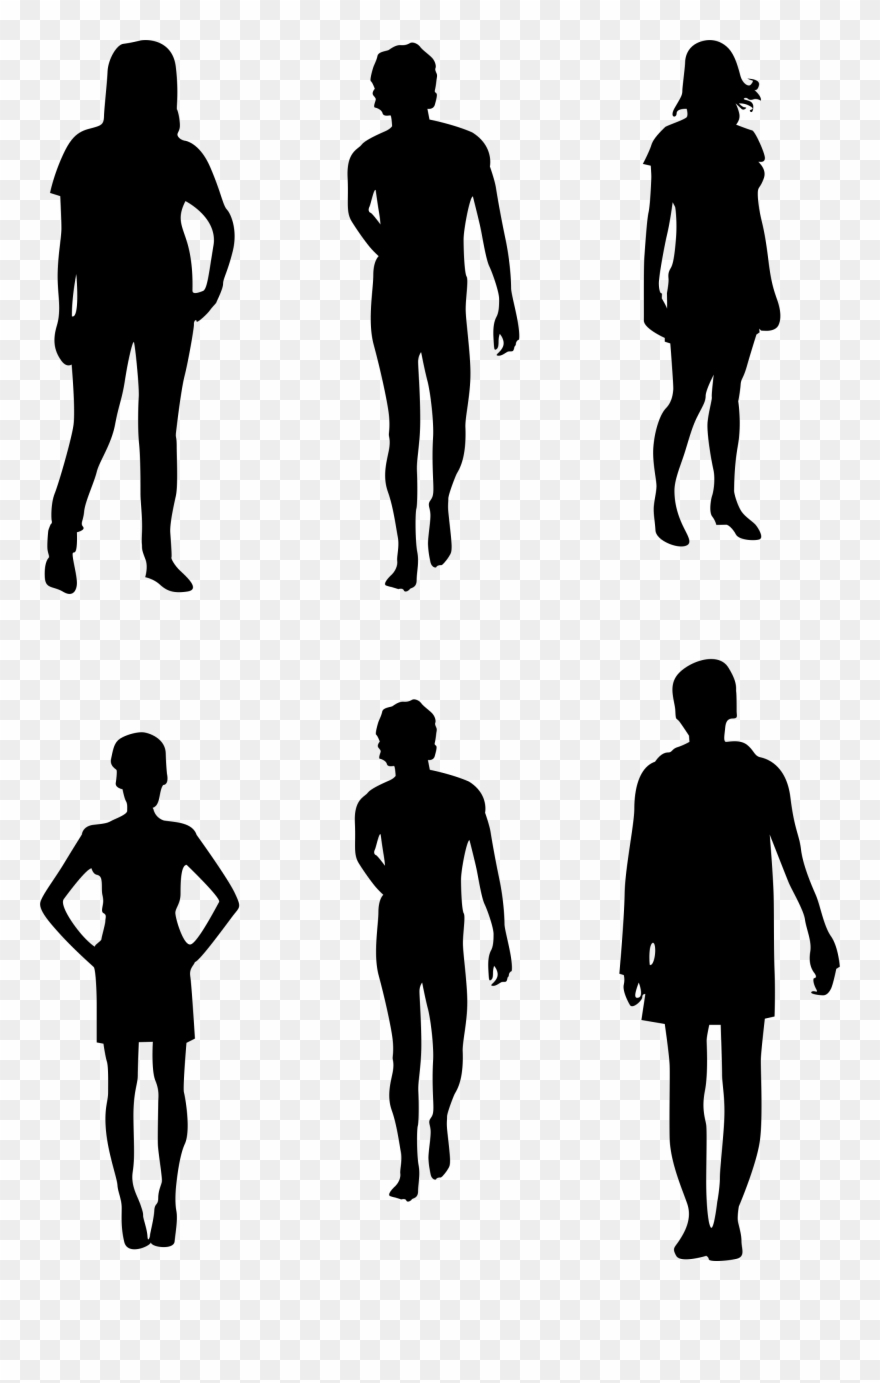 Photoshop People Silhouettes.